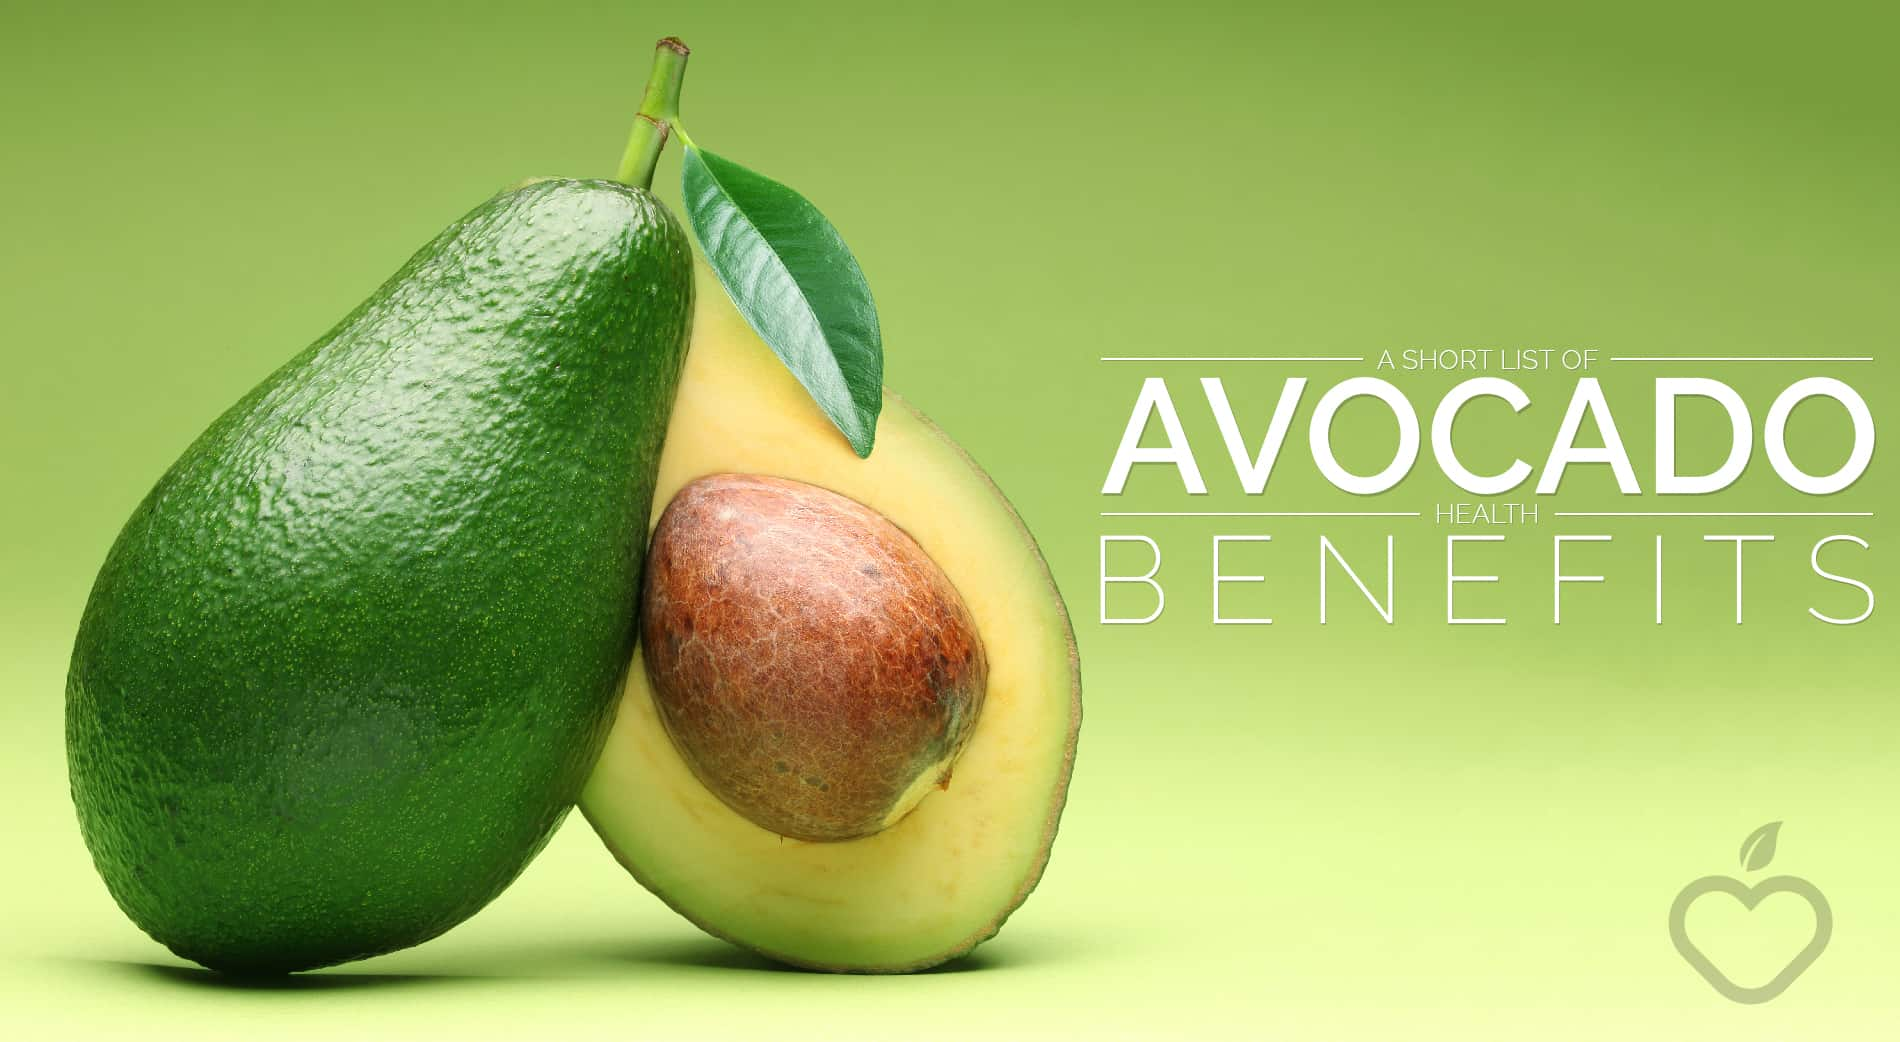 Avocado Image Design 1 - A Short List Of Avocado Health Benefits